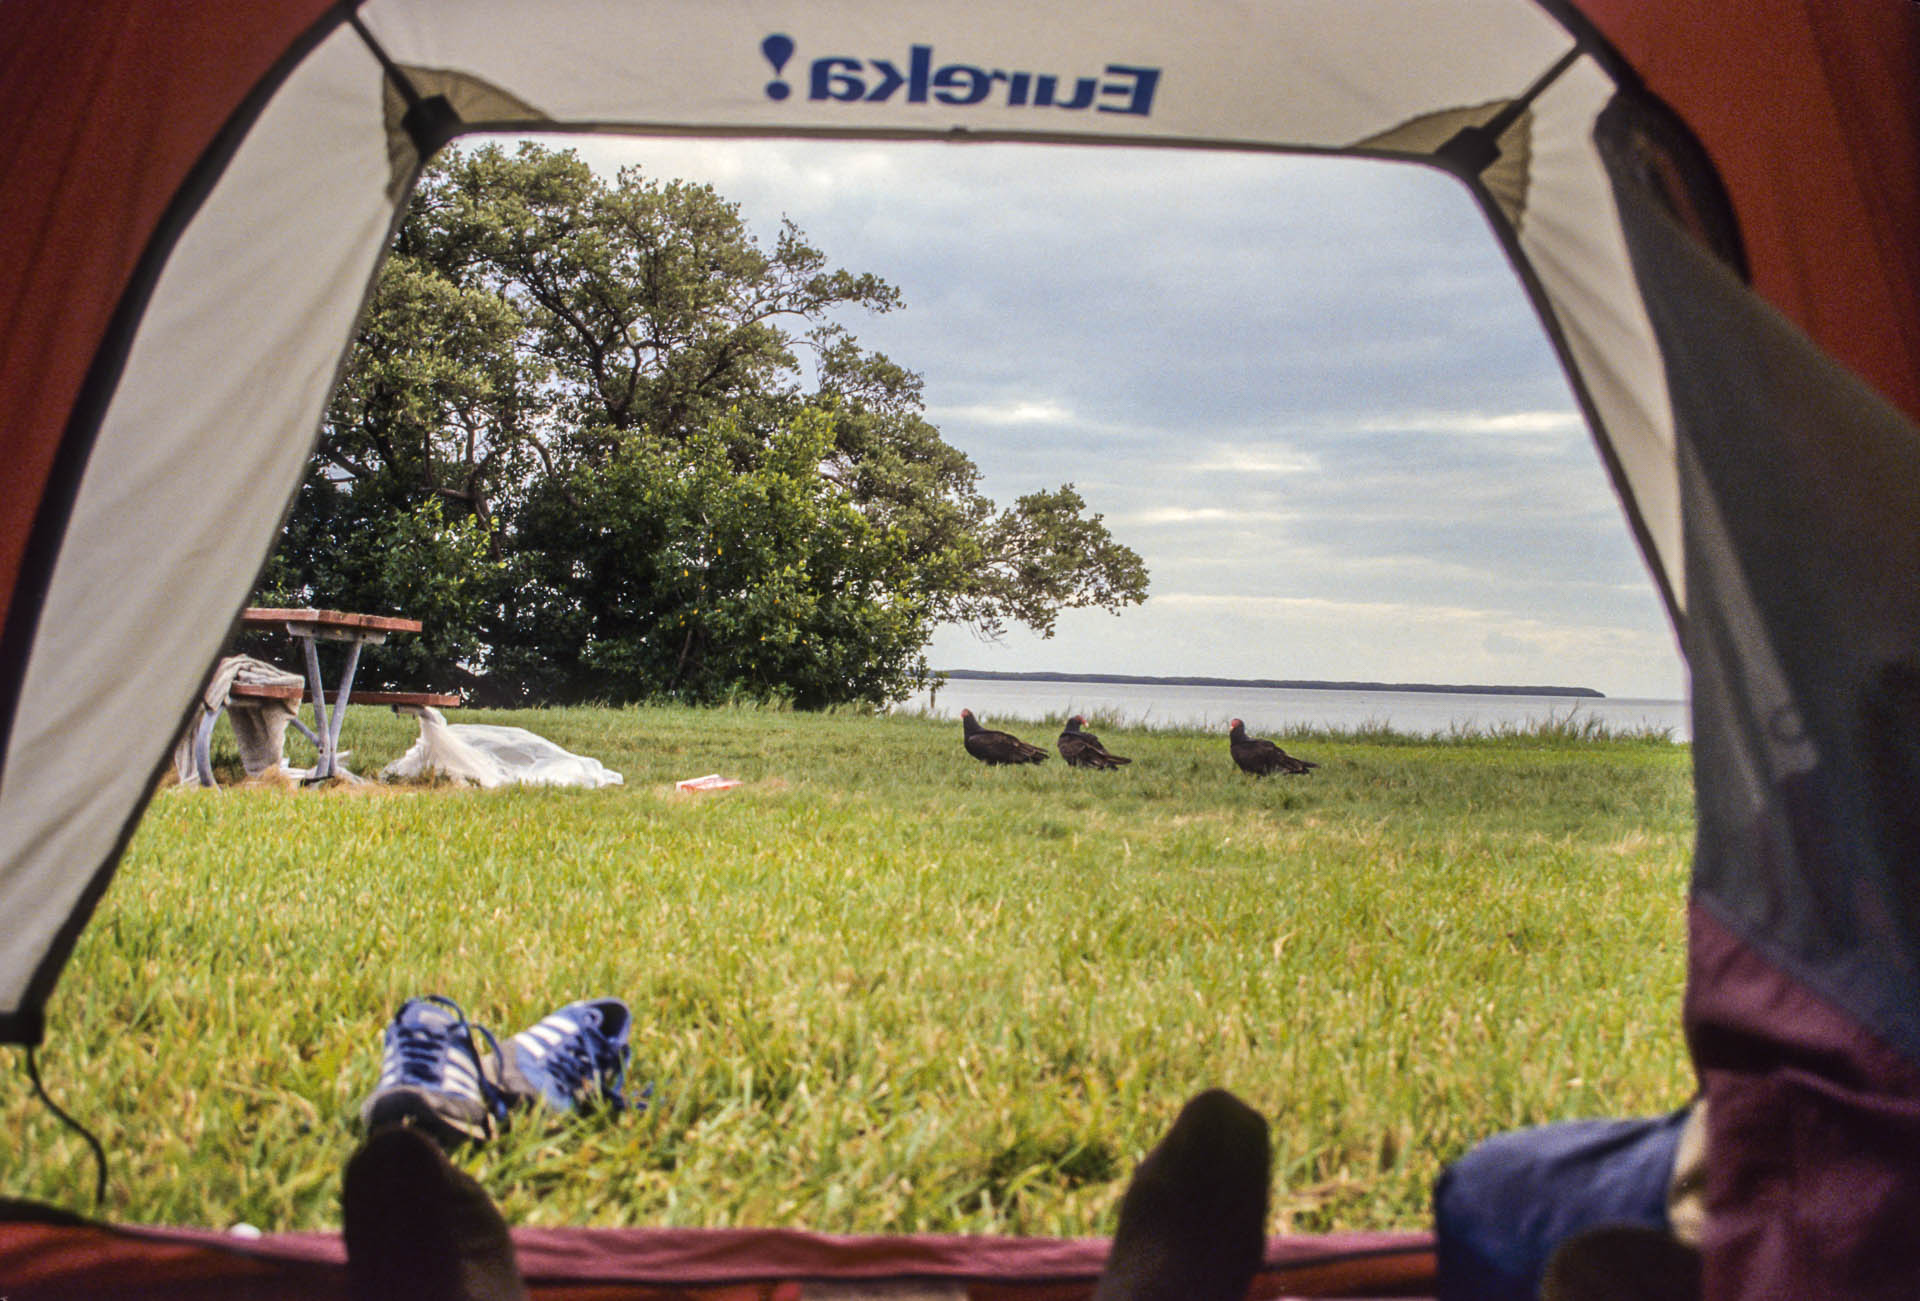 Camping in the Everglades national park